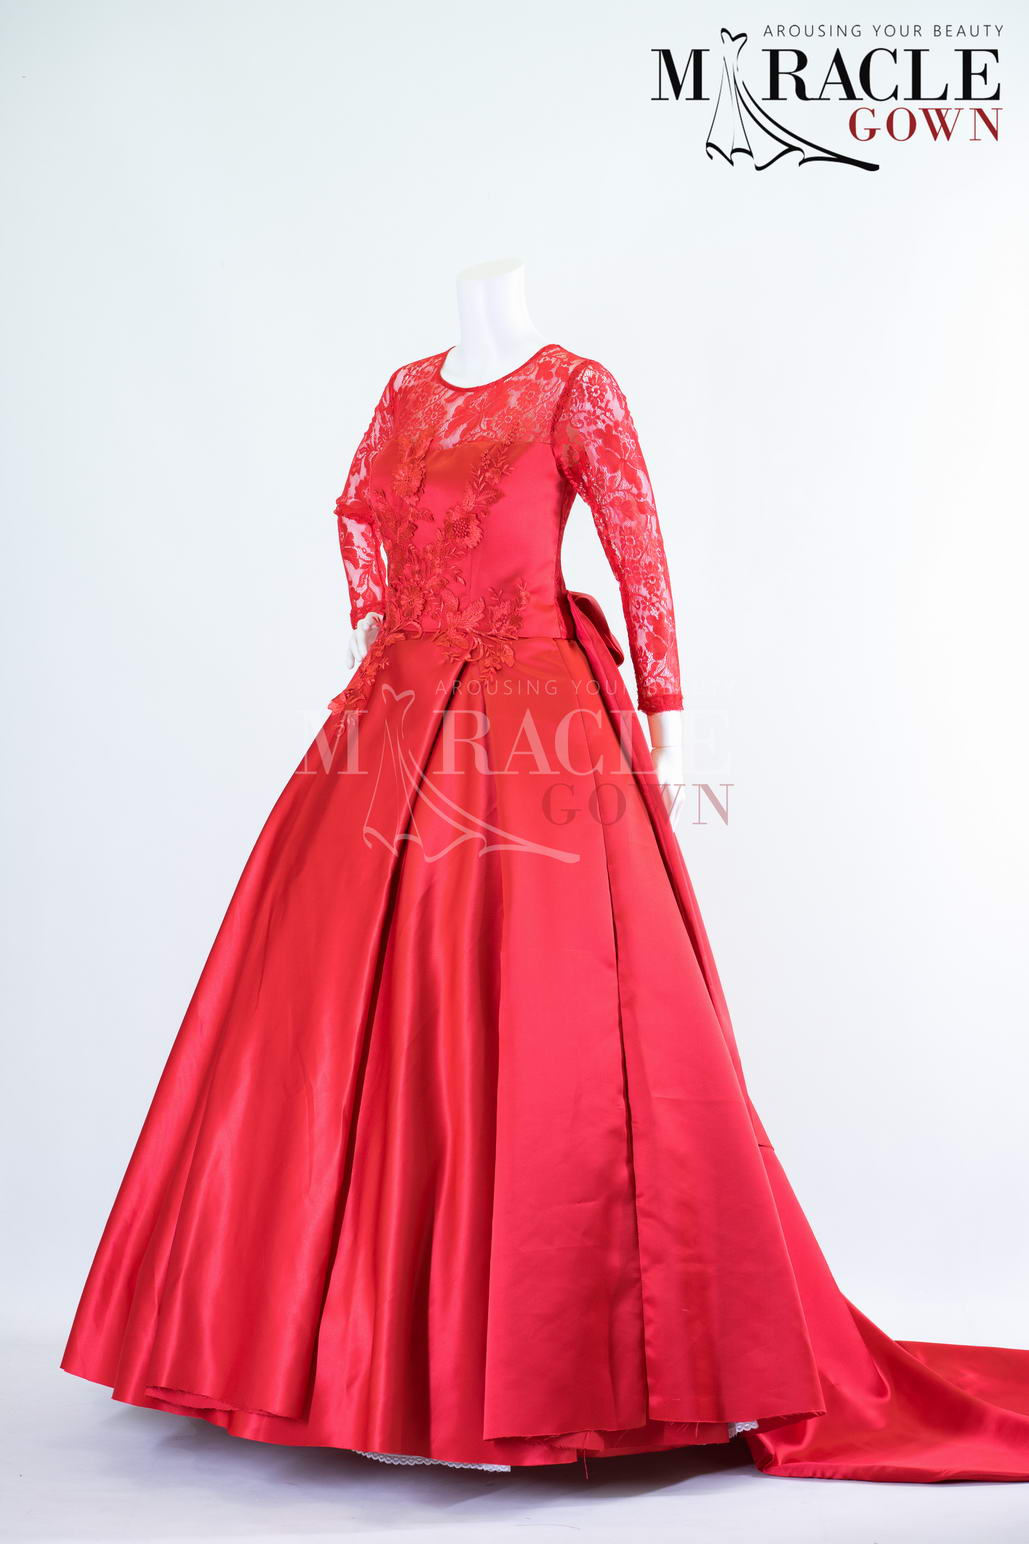 Sewa Gaun Surabaya - Miracle Gown - Floral sequence on ruby red ball gown